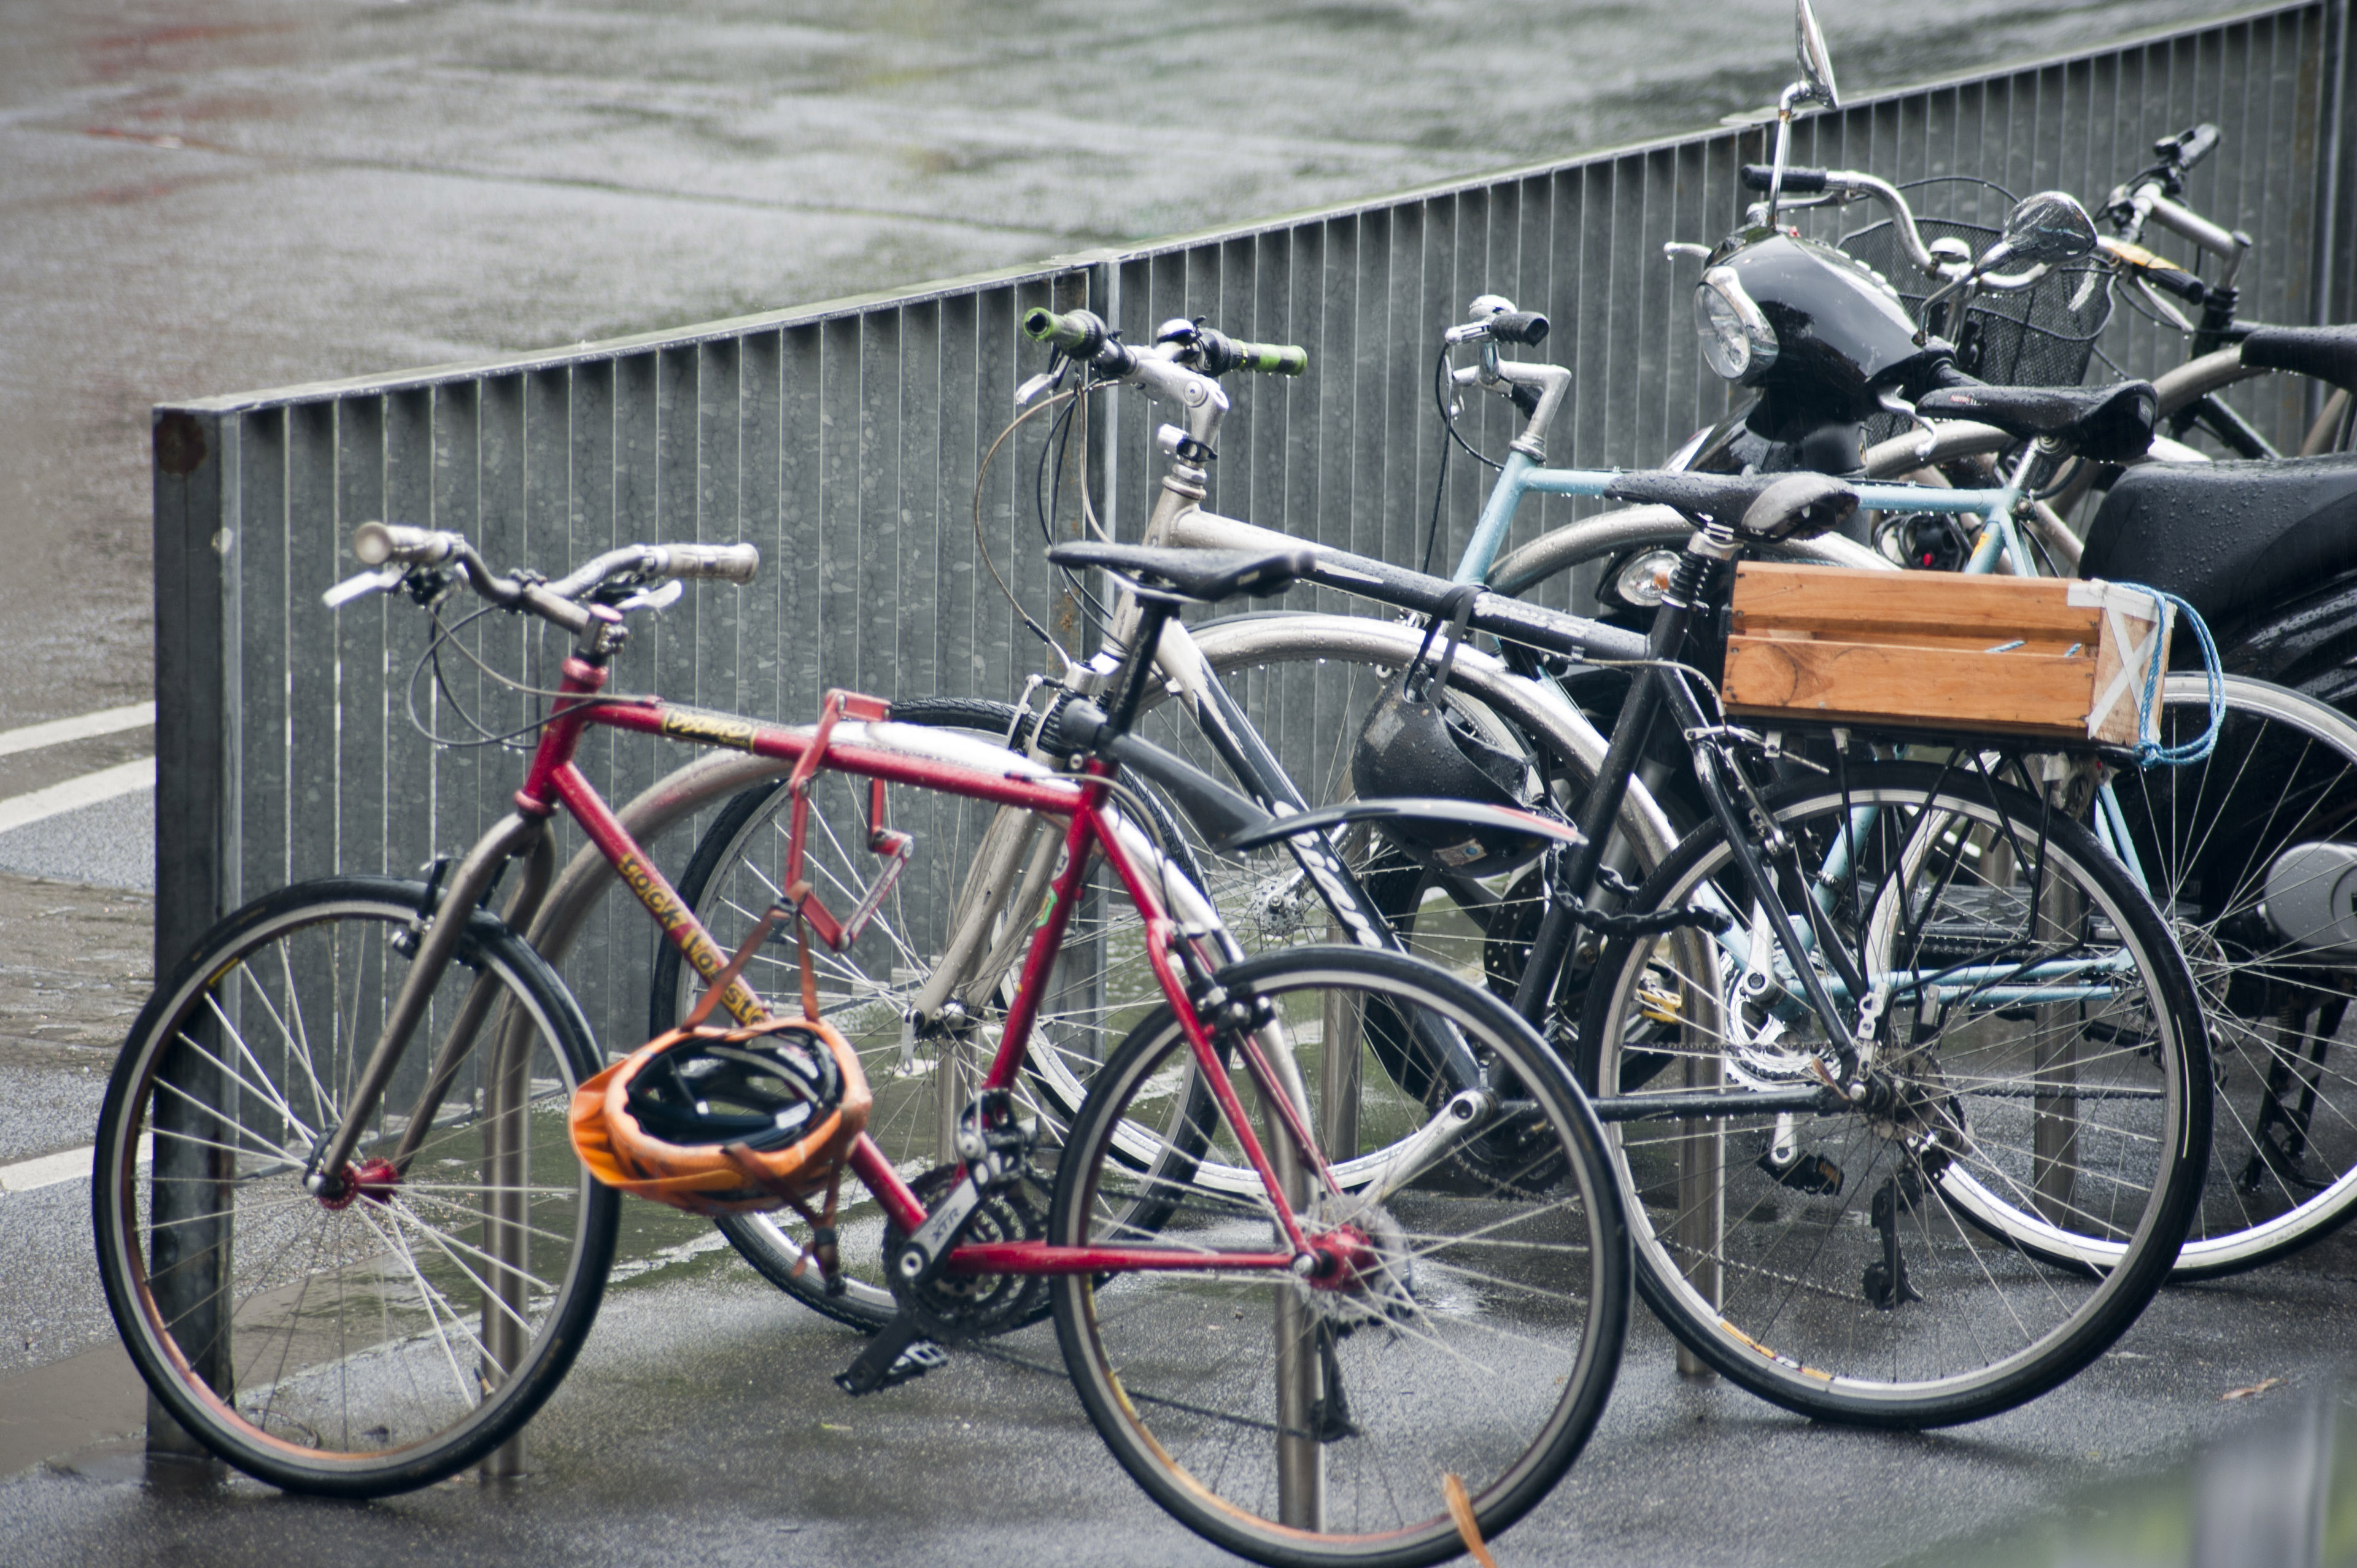 Various bicycles parked and chained at a city street bike rack.